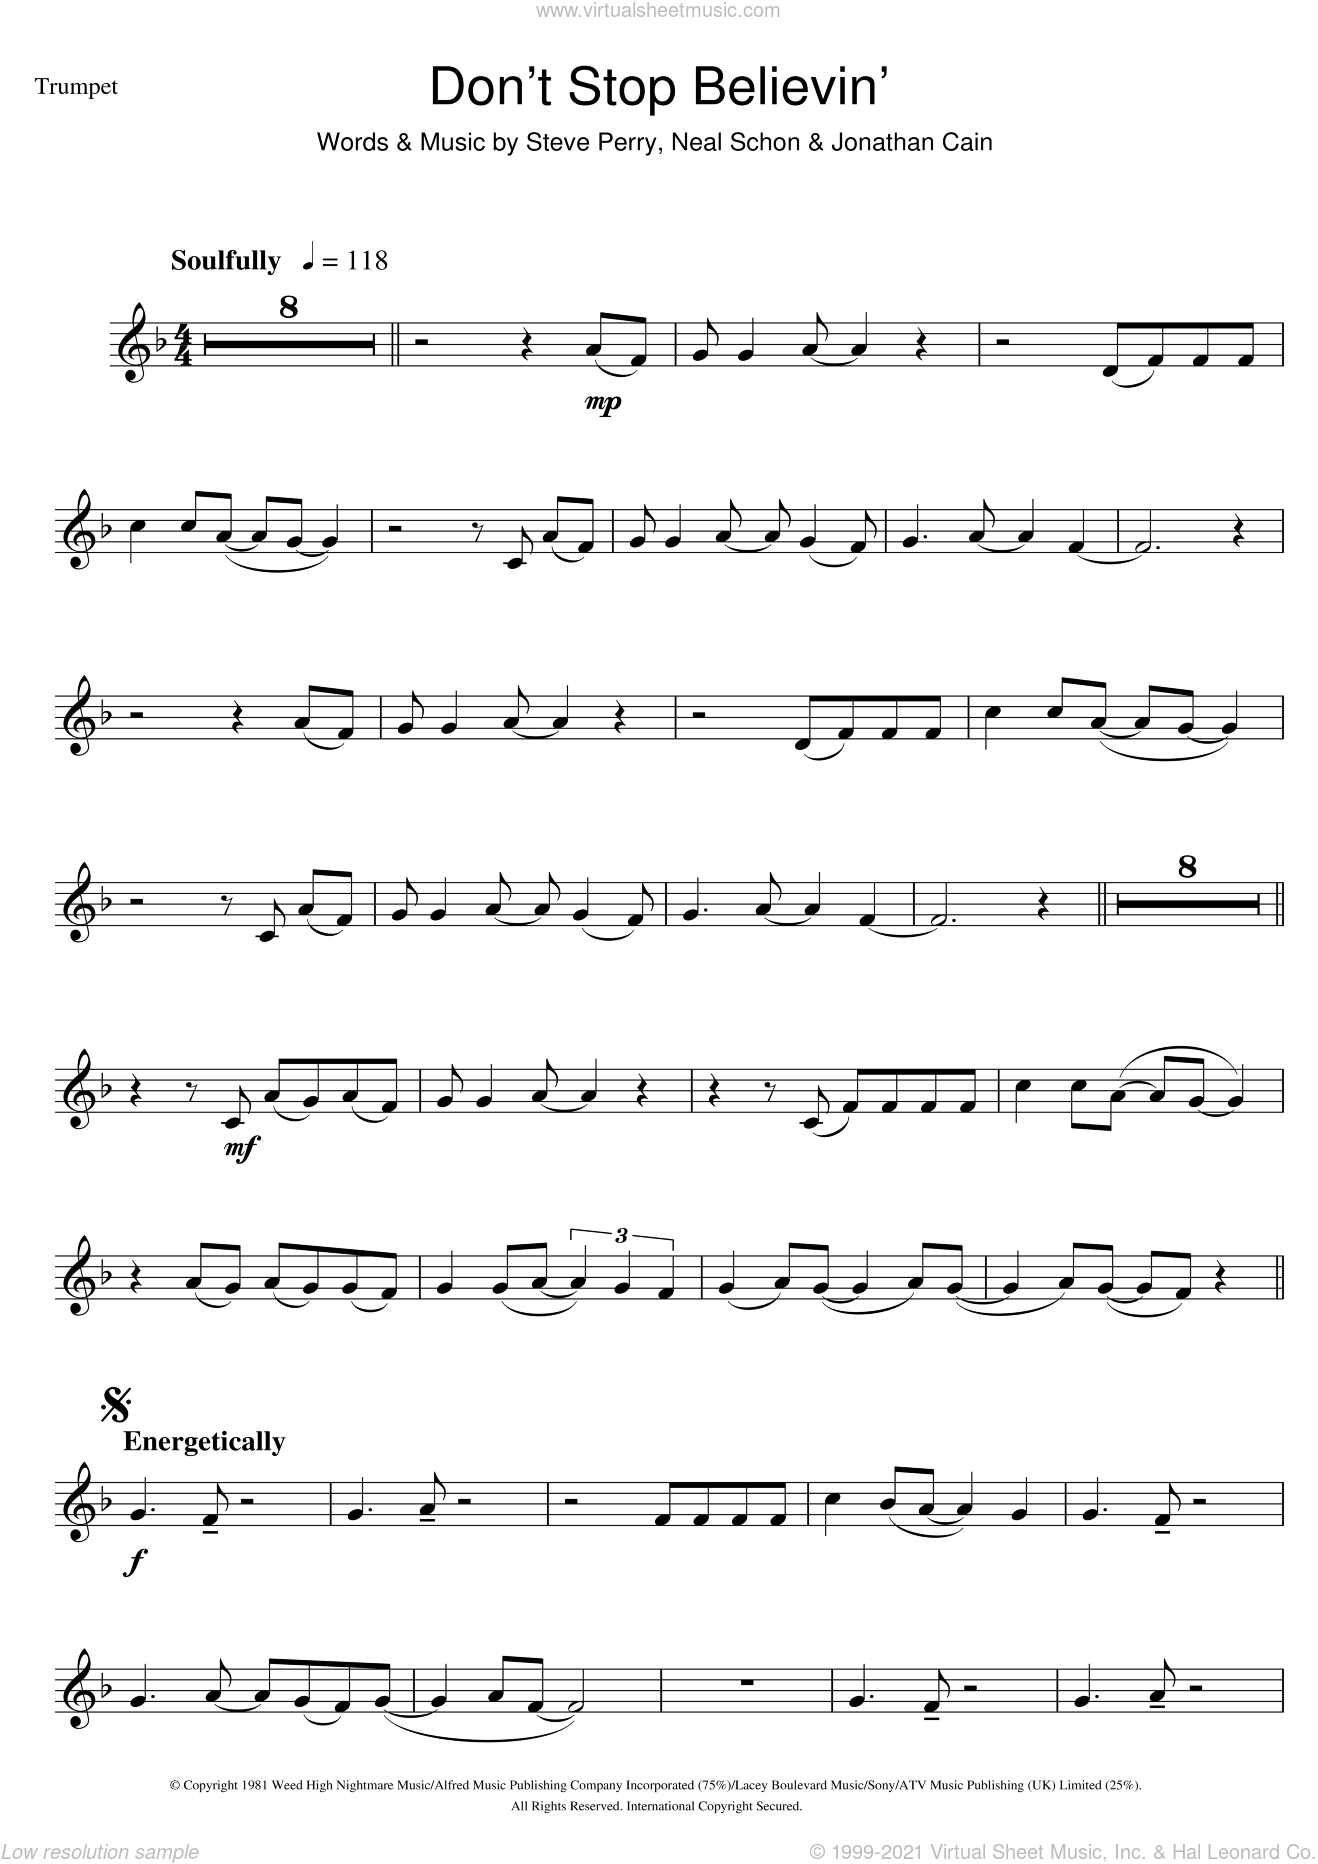 Don't Stop Believin' sheet music for trumpet solo by Journey, Glee Cast, Jonathan Cain, Neal Schon and Steve Perry, intermediate. Score Image Preview.